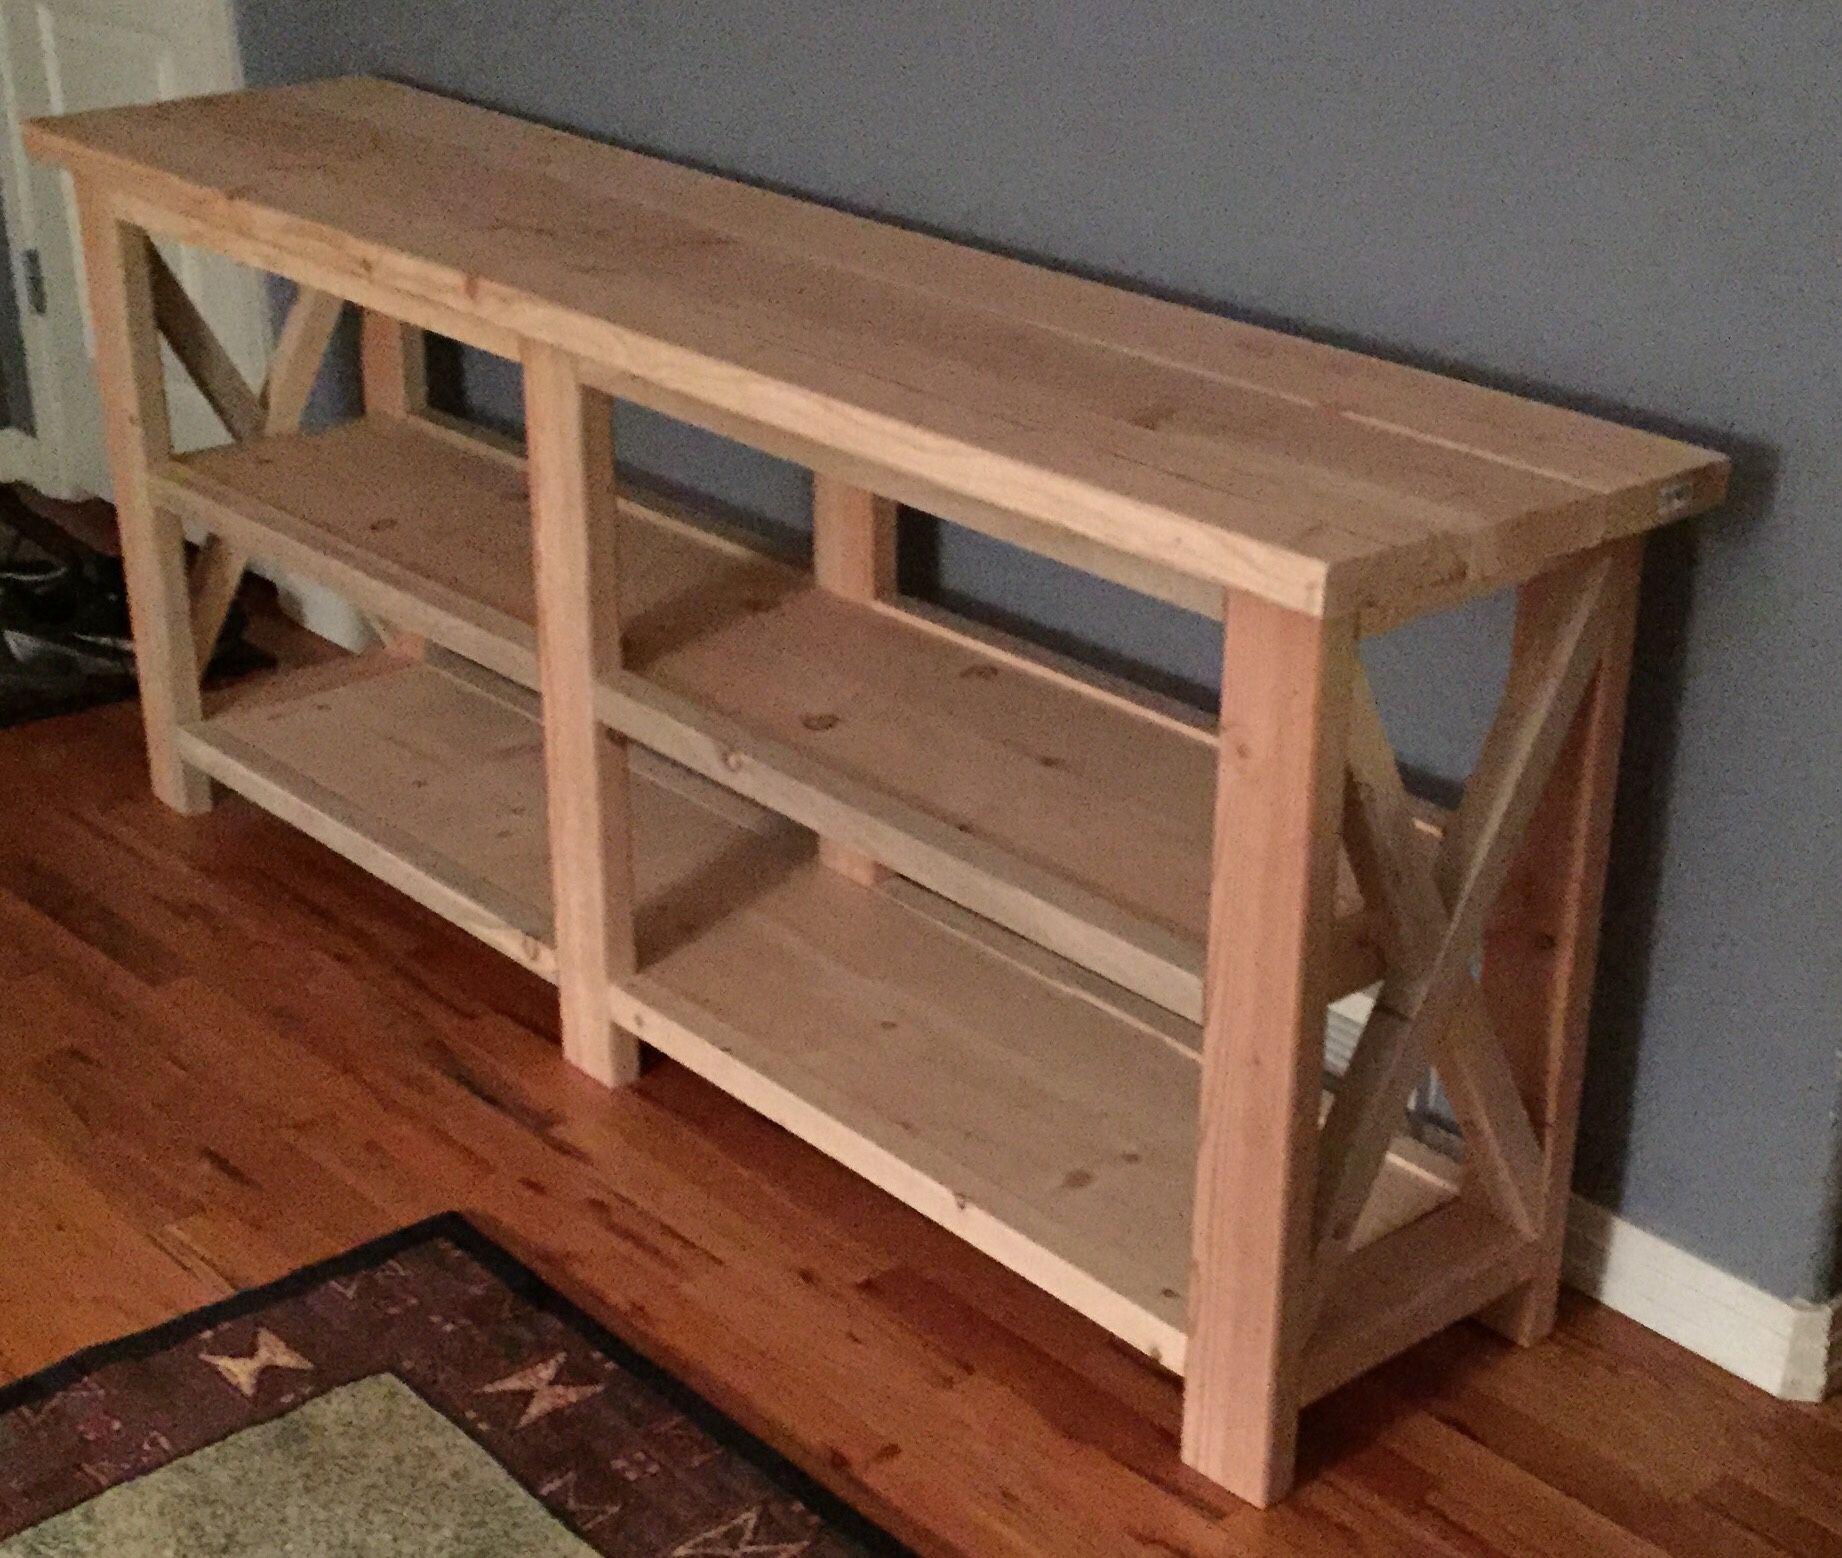 Diy Sofa Table Found On Shanty2chic Com Plans From Ana White Com With A Rustic Flair Ana White Diy Sofa Tab Diy Sofa Table Rustic Sofa Tables Wood Sofa Table